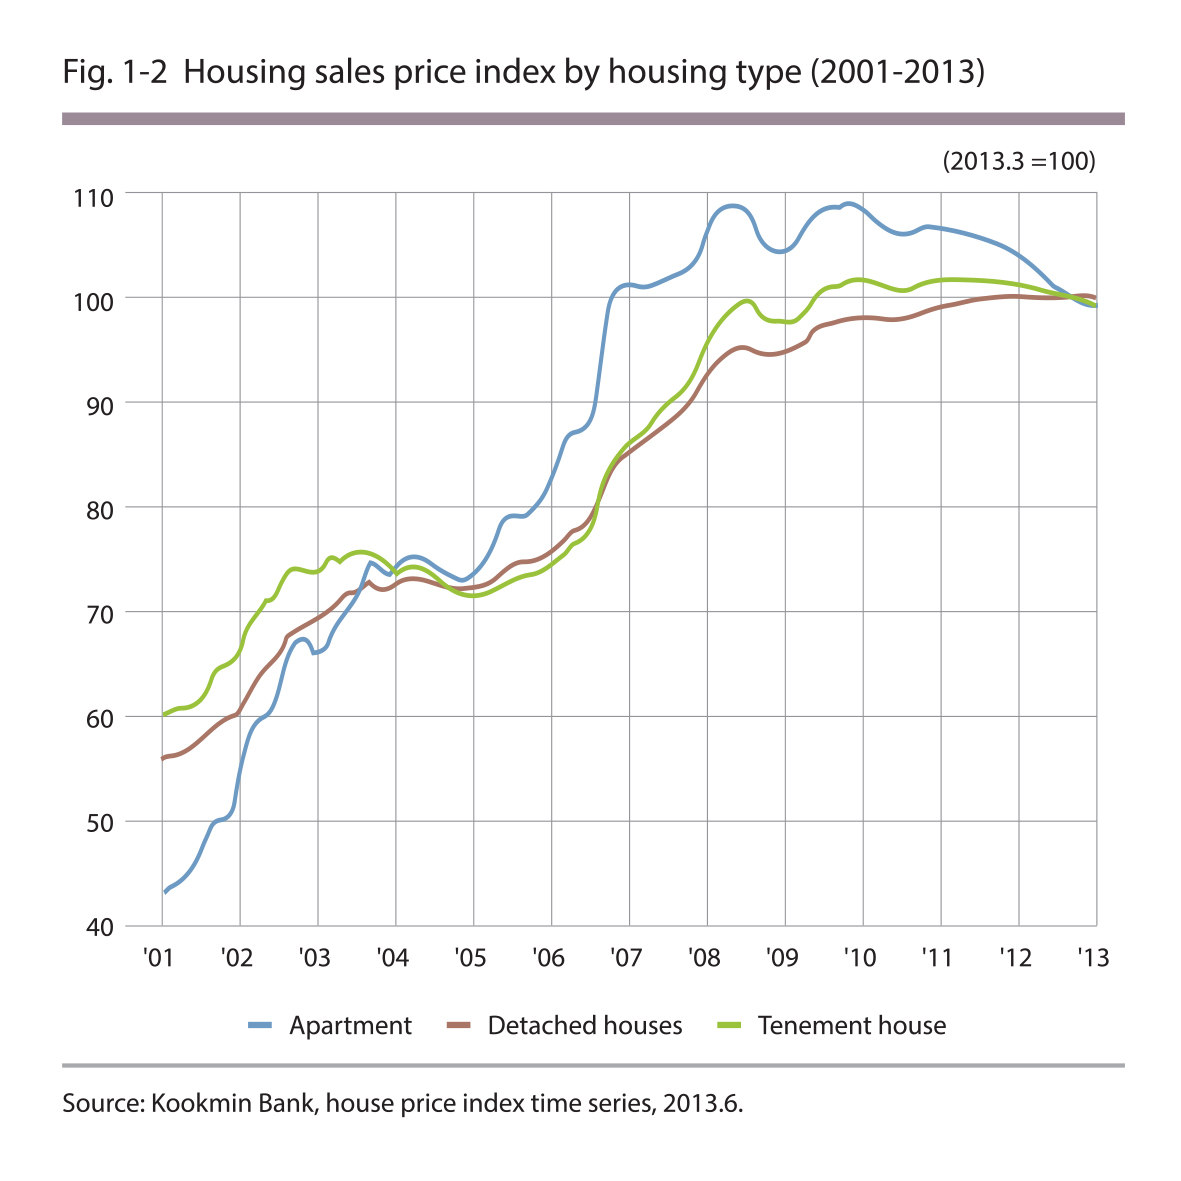 Housing sales price index by housing type (2001-2013)